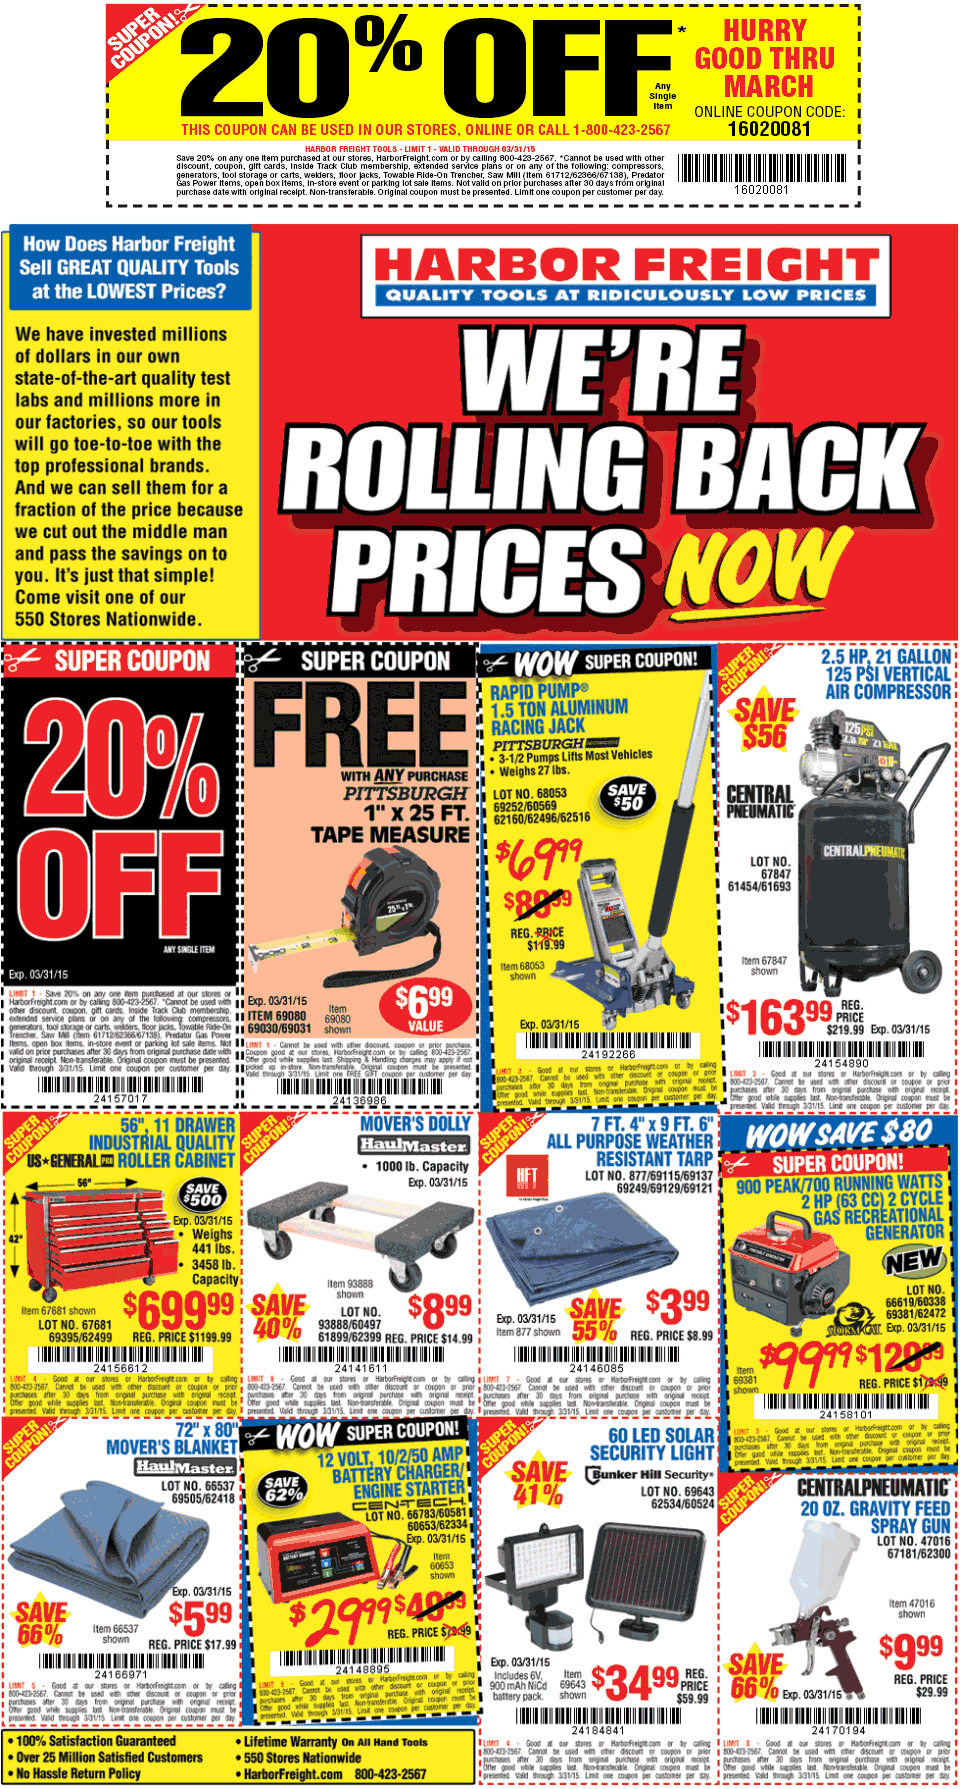 Harbor Freight Coupon May 2017 20% off a single item & more at Harbor Freight Tools, or online via promo code 16020081